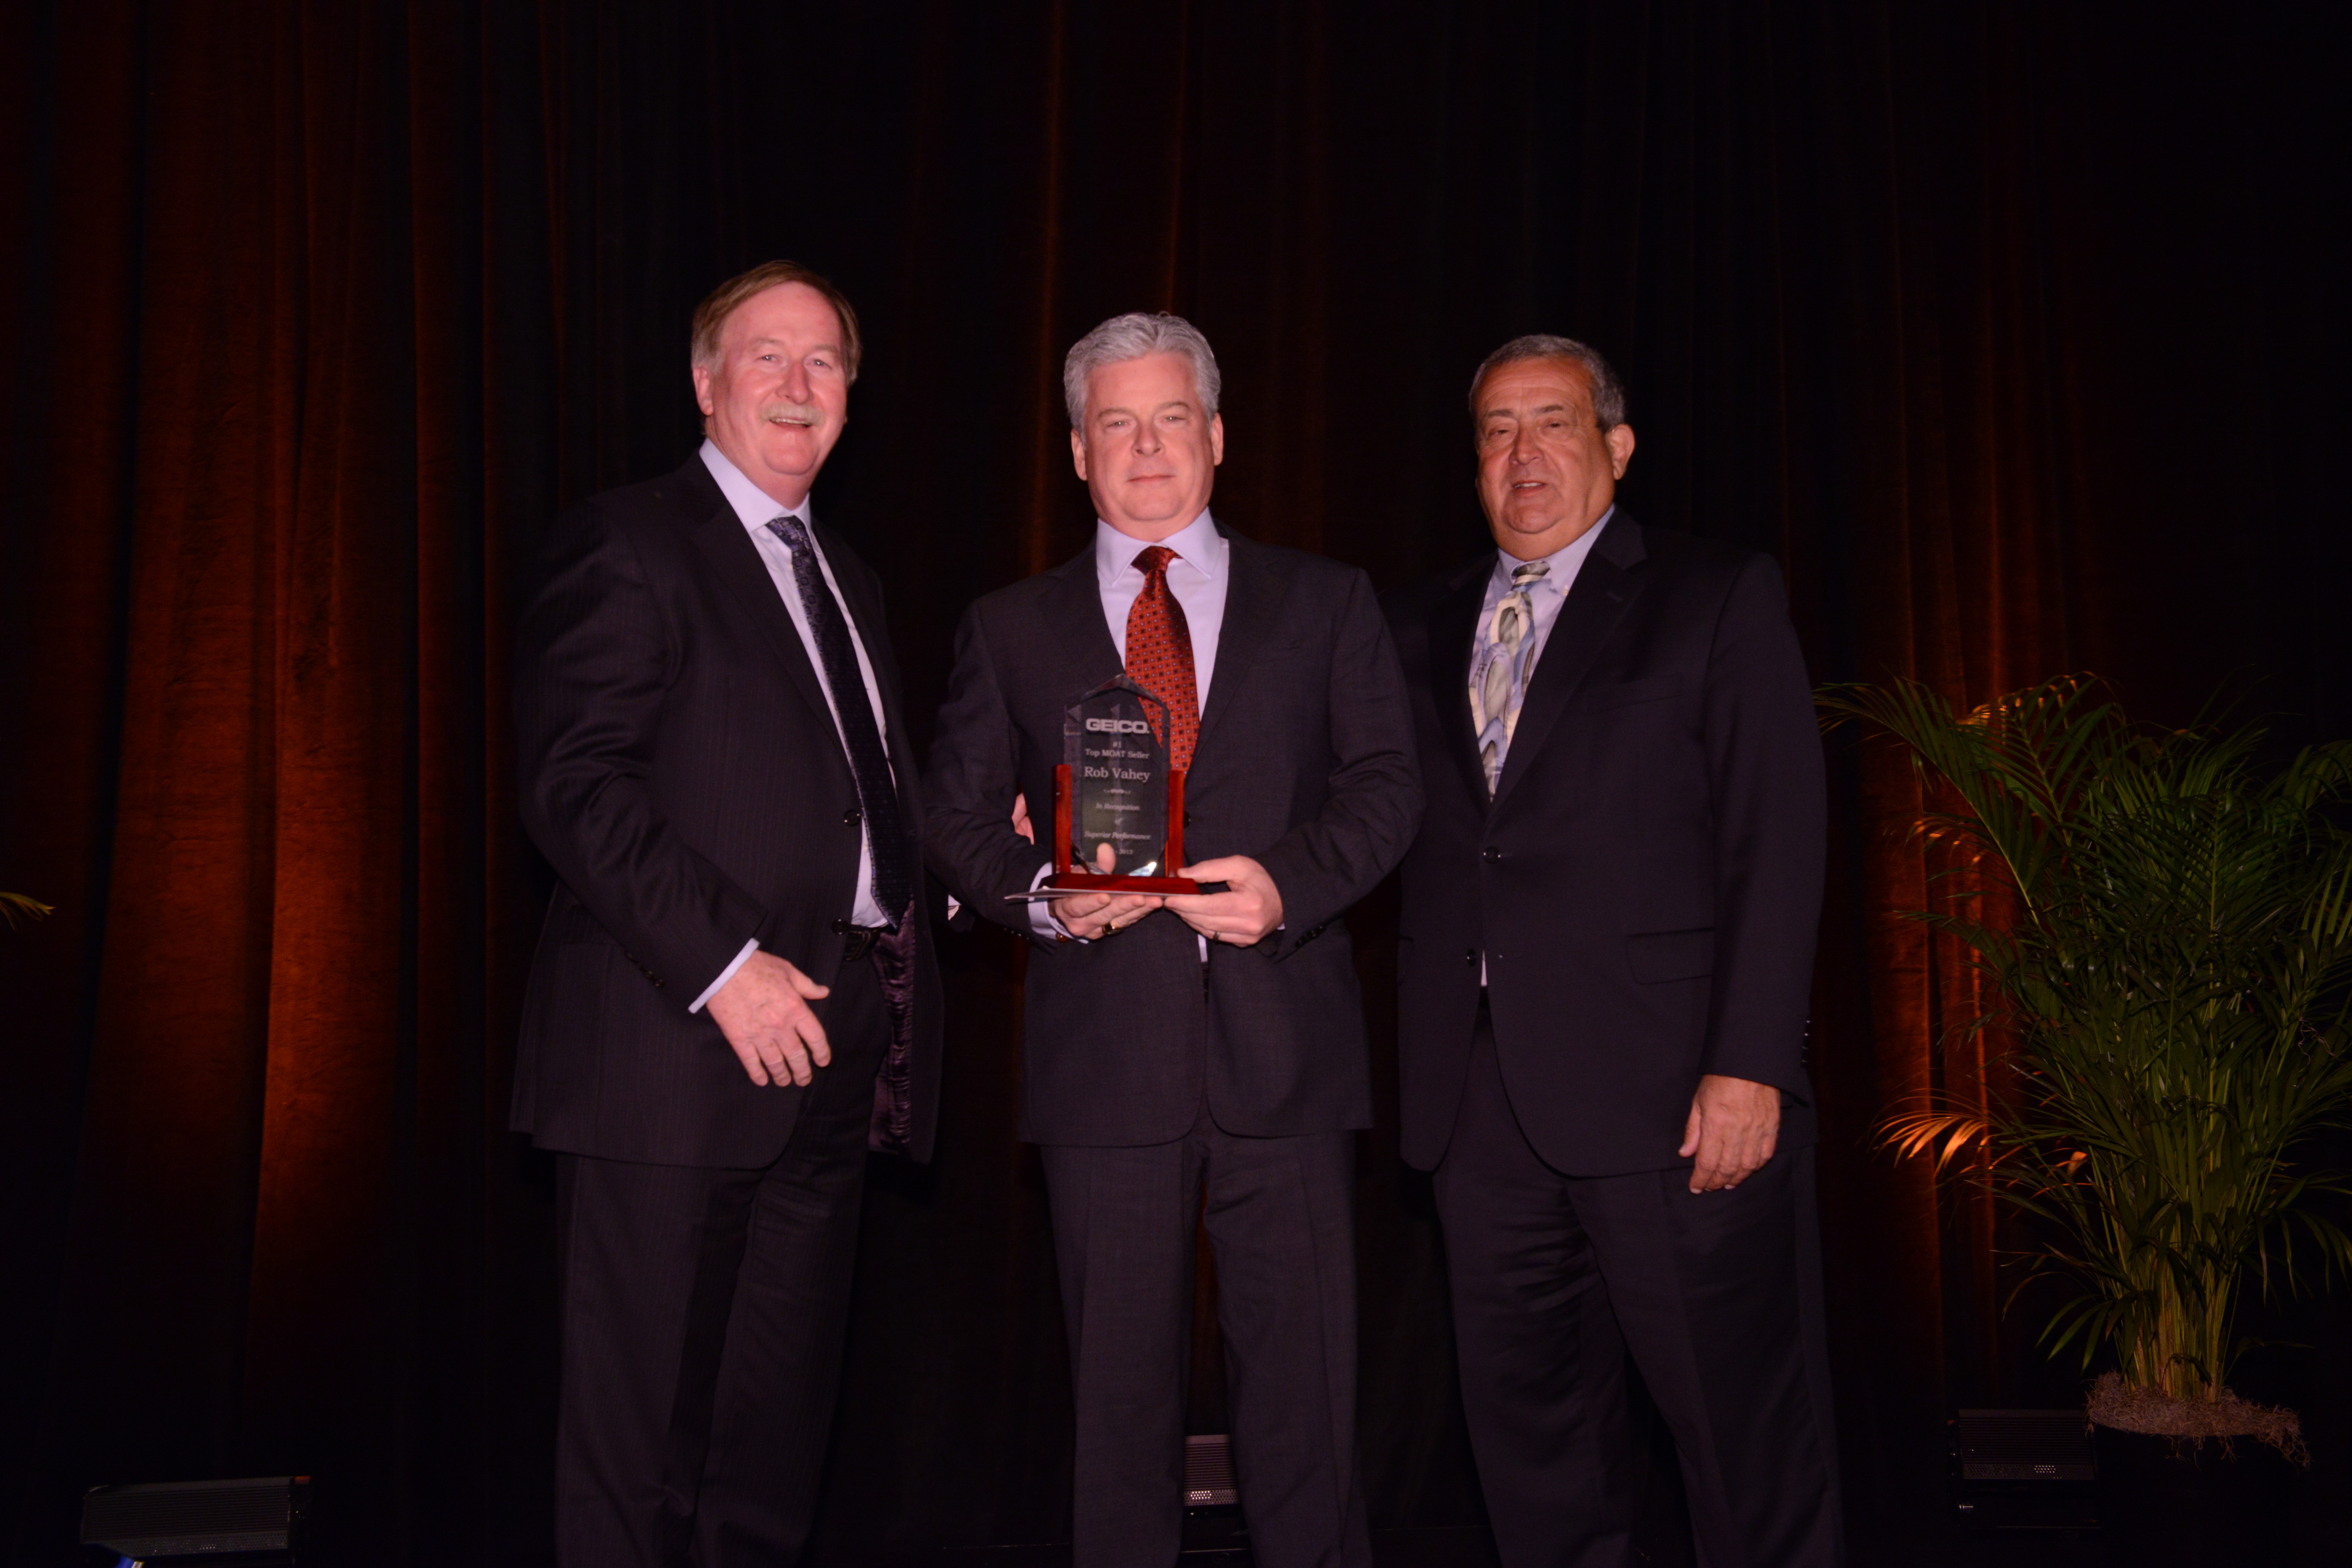 GEICO local agent Rob Vahey (center) is presented the award for GEICO Insurance Agency sales leader of the year by GEICO president and COO Bill Roberts (left) and GEICO Insurance Agency president John Zinno (right) (Photo: Business Wire)